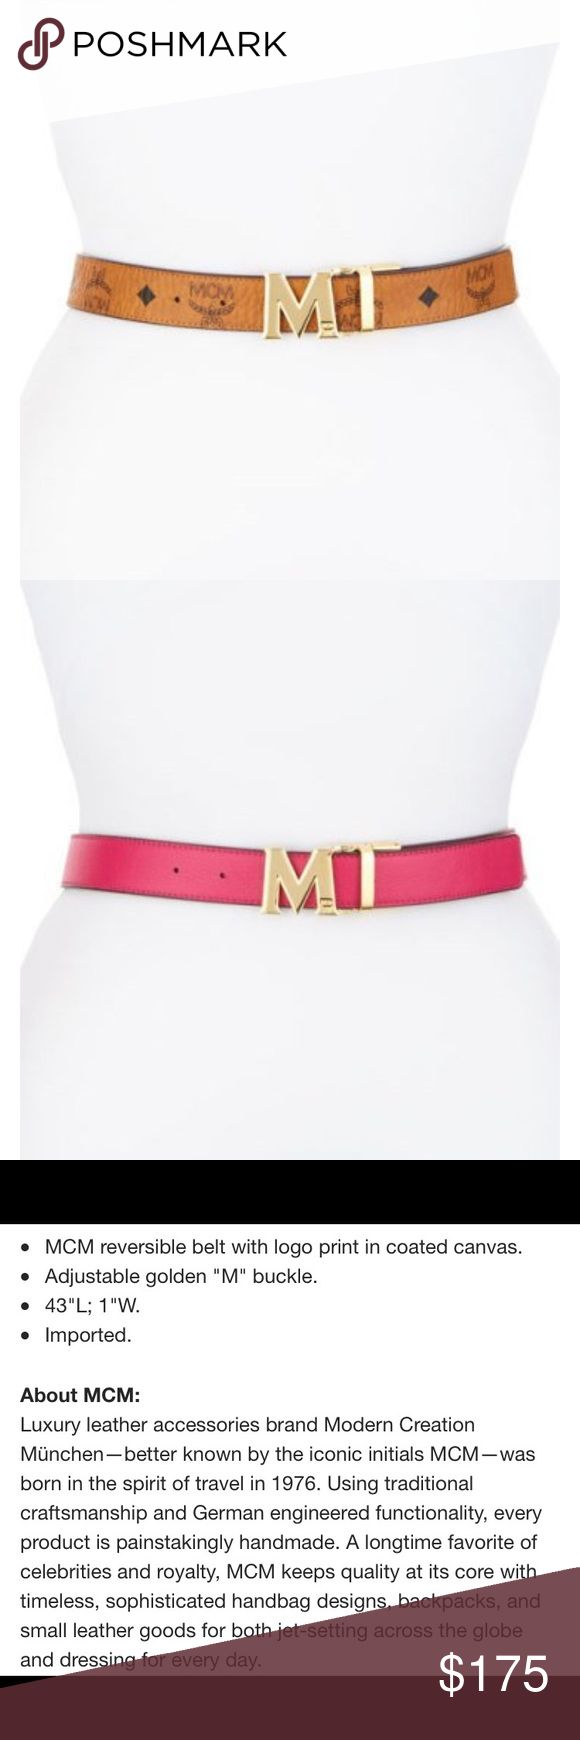 Women's MCM Reversible Logo Belt MCM reversible logo belt in classic cognac & hot pink. Rarely used, leather is in like-new condition. MCM, Ferragamo, & Tory Burch hardware on belts all seem to scuff the same  Please see pictures. Offers Welcome  MCM Accessories Belts